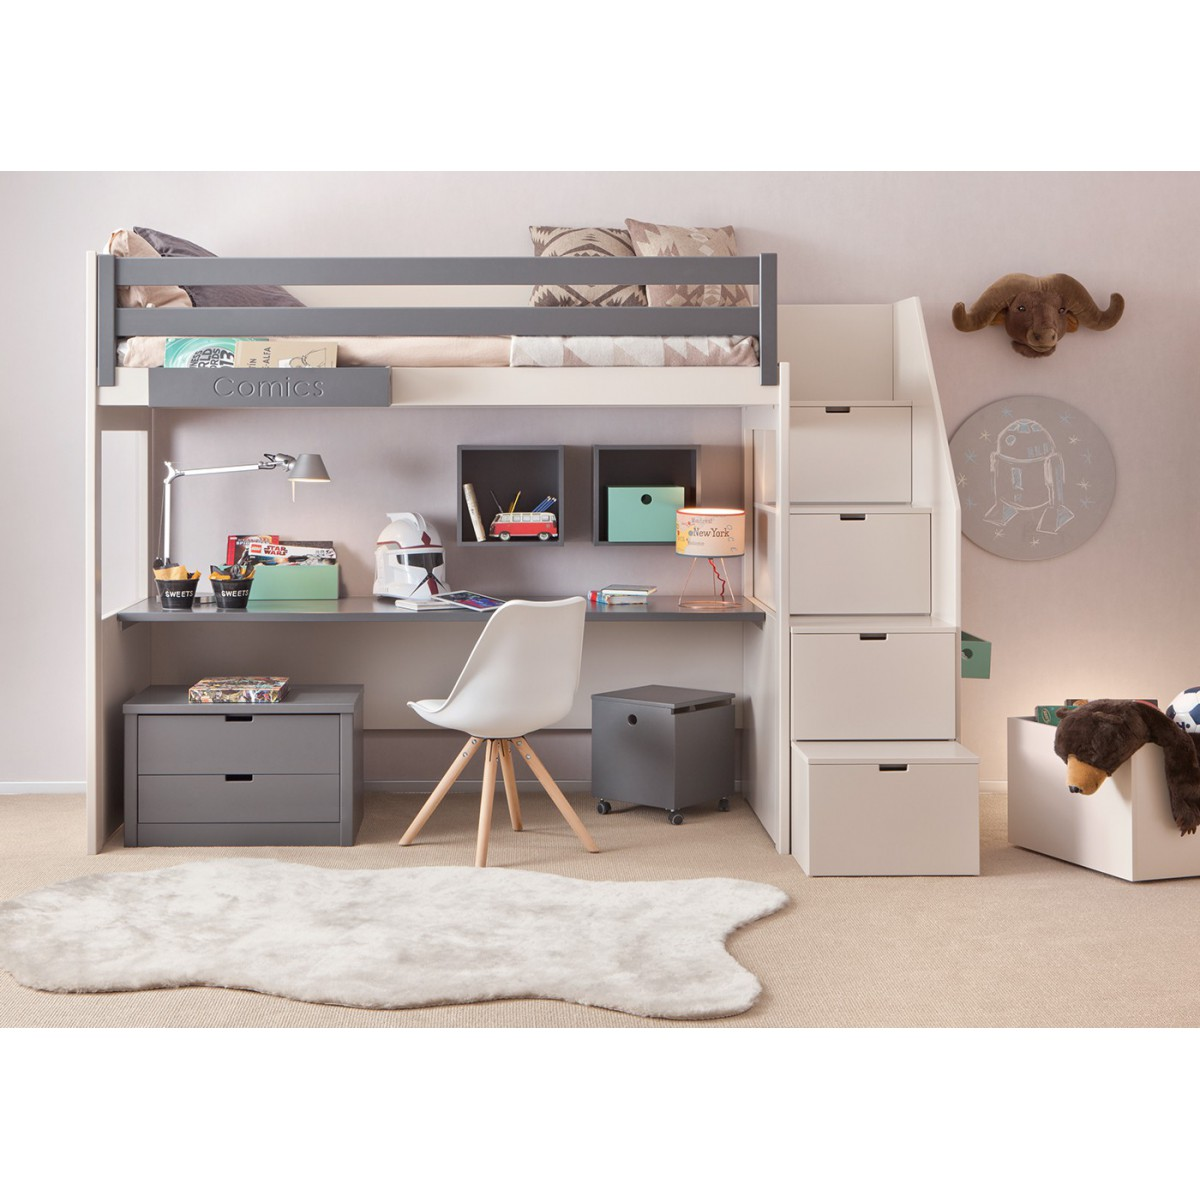 Chambre design sp cial ados juniors sign enfant design - Bureau lit mezzanine ...